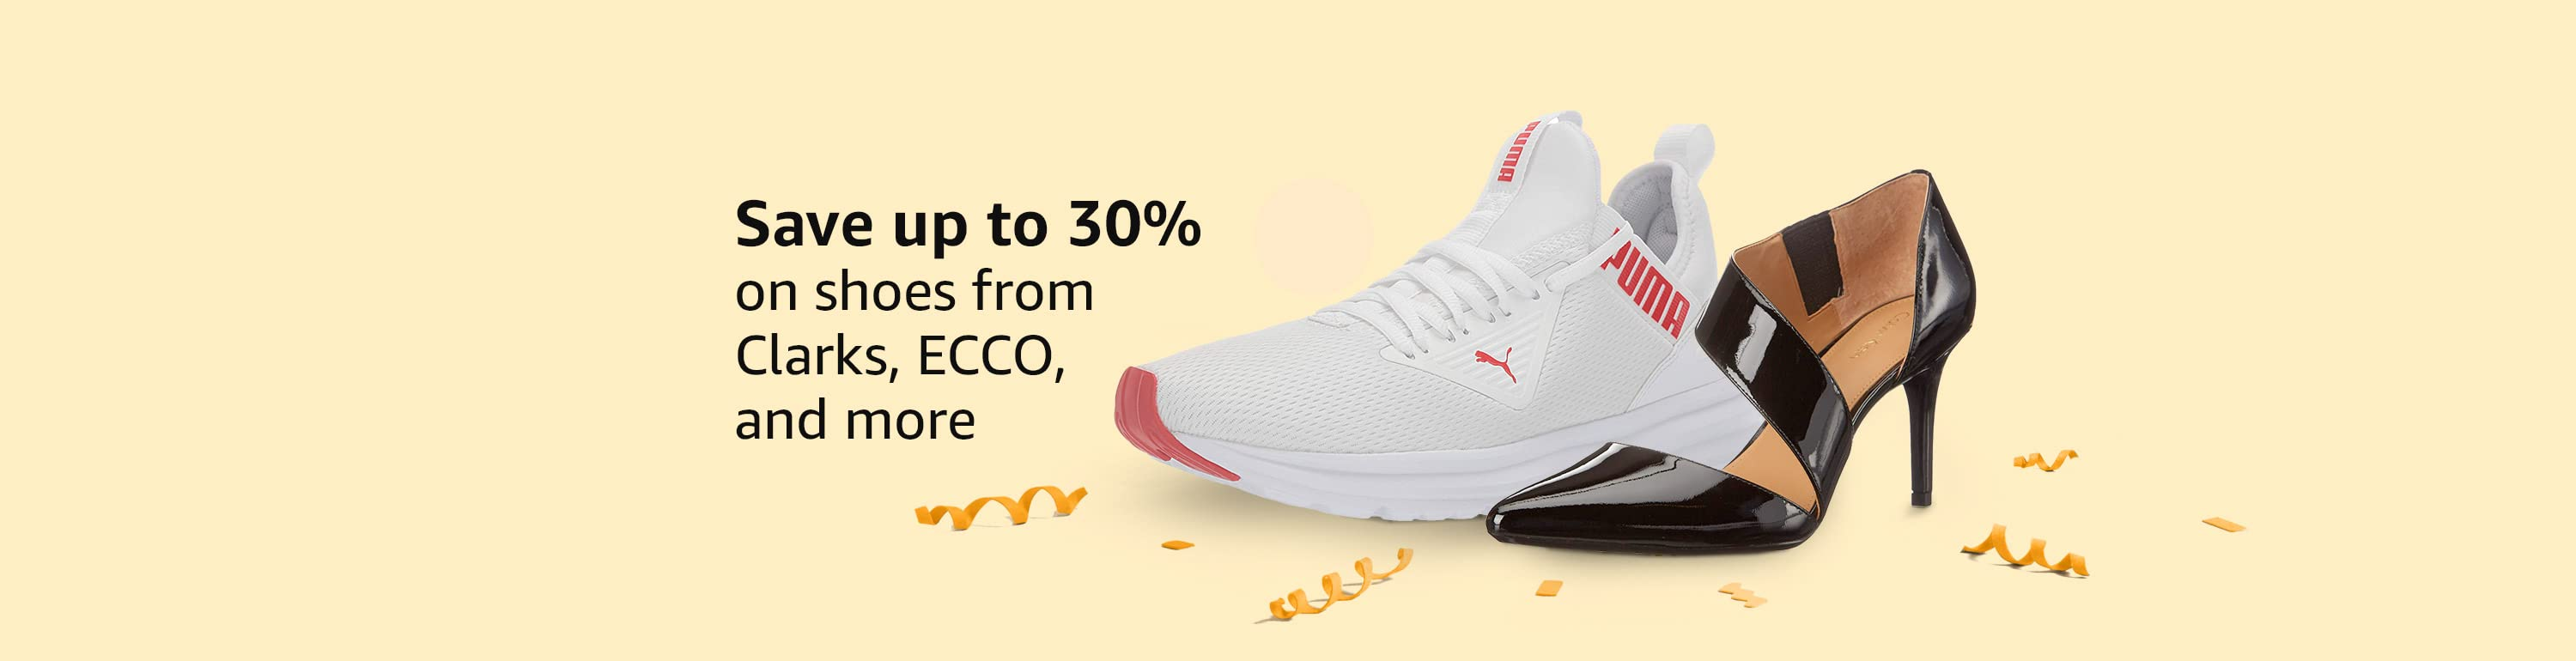 Save up to 30% on shoes from Clarks, Puma and more